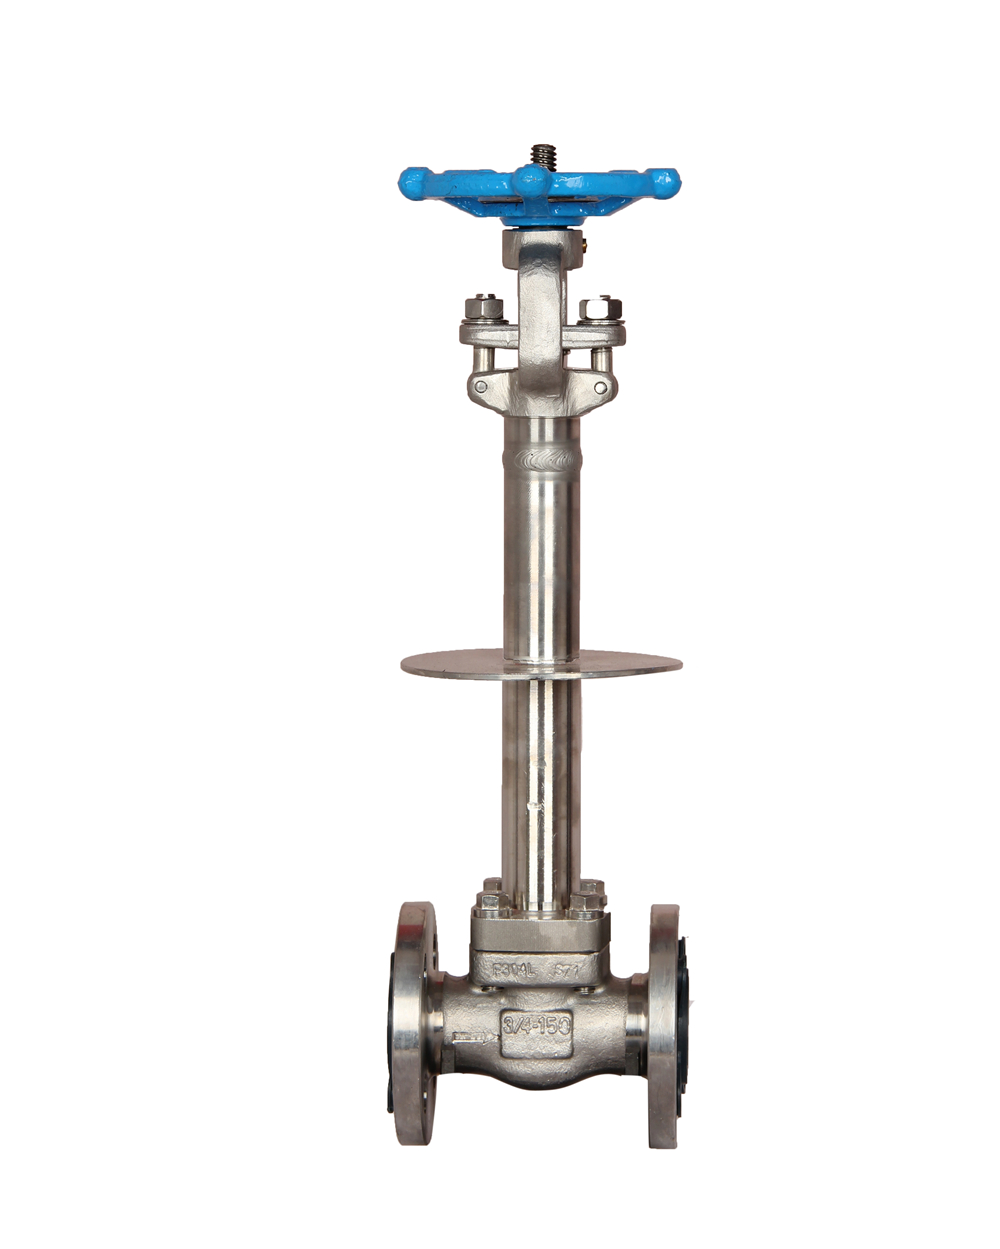 Integral Flanged Cyogenic Gate Valve